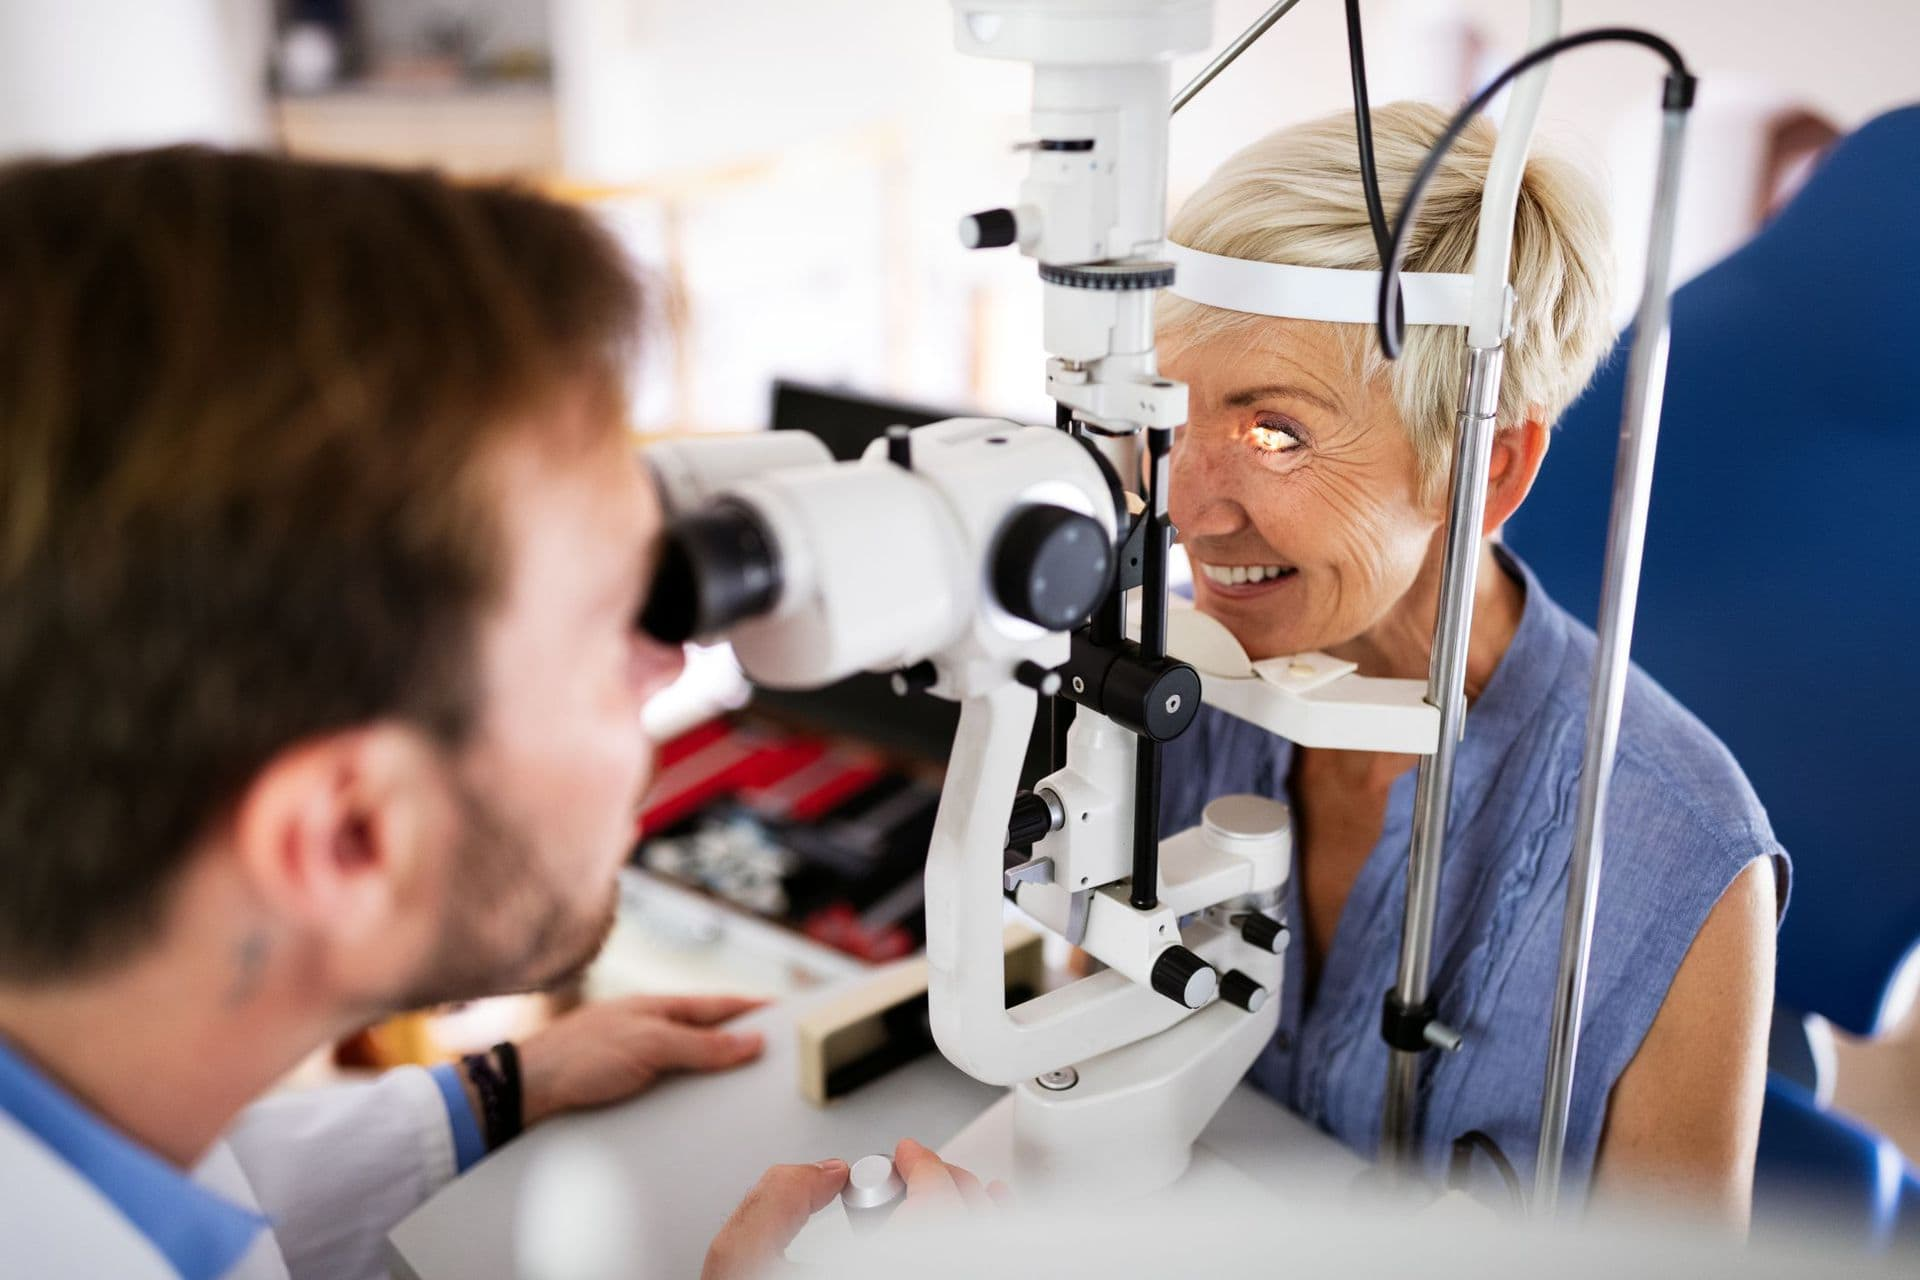 The Process Of Cataract Surgery Explained